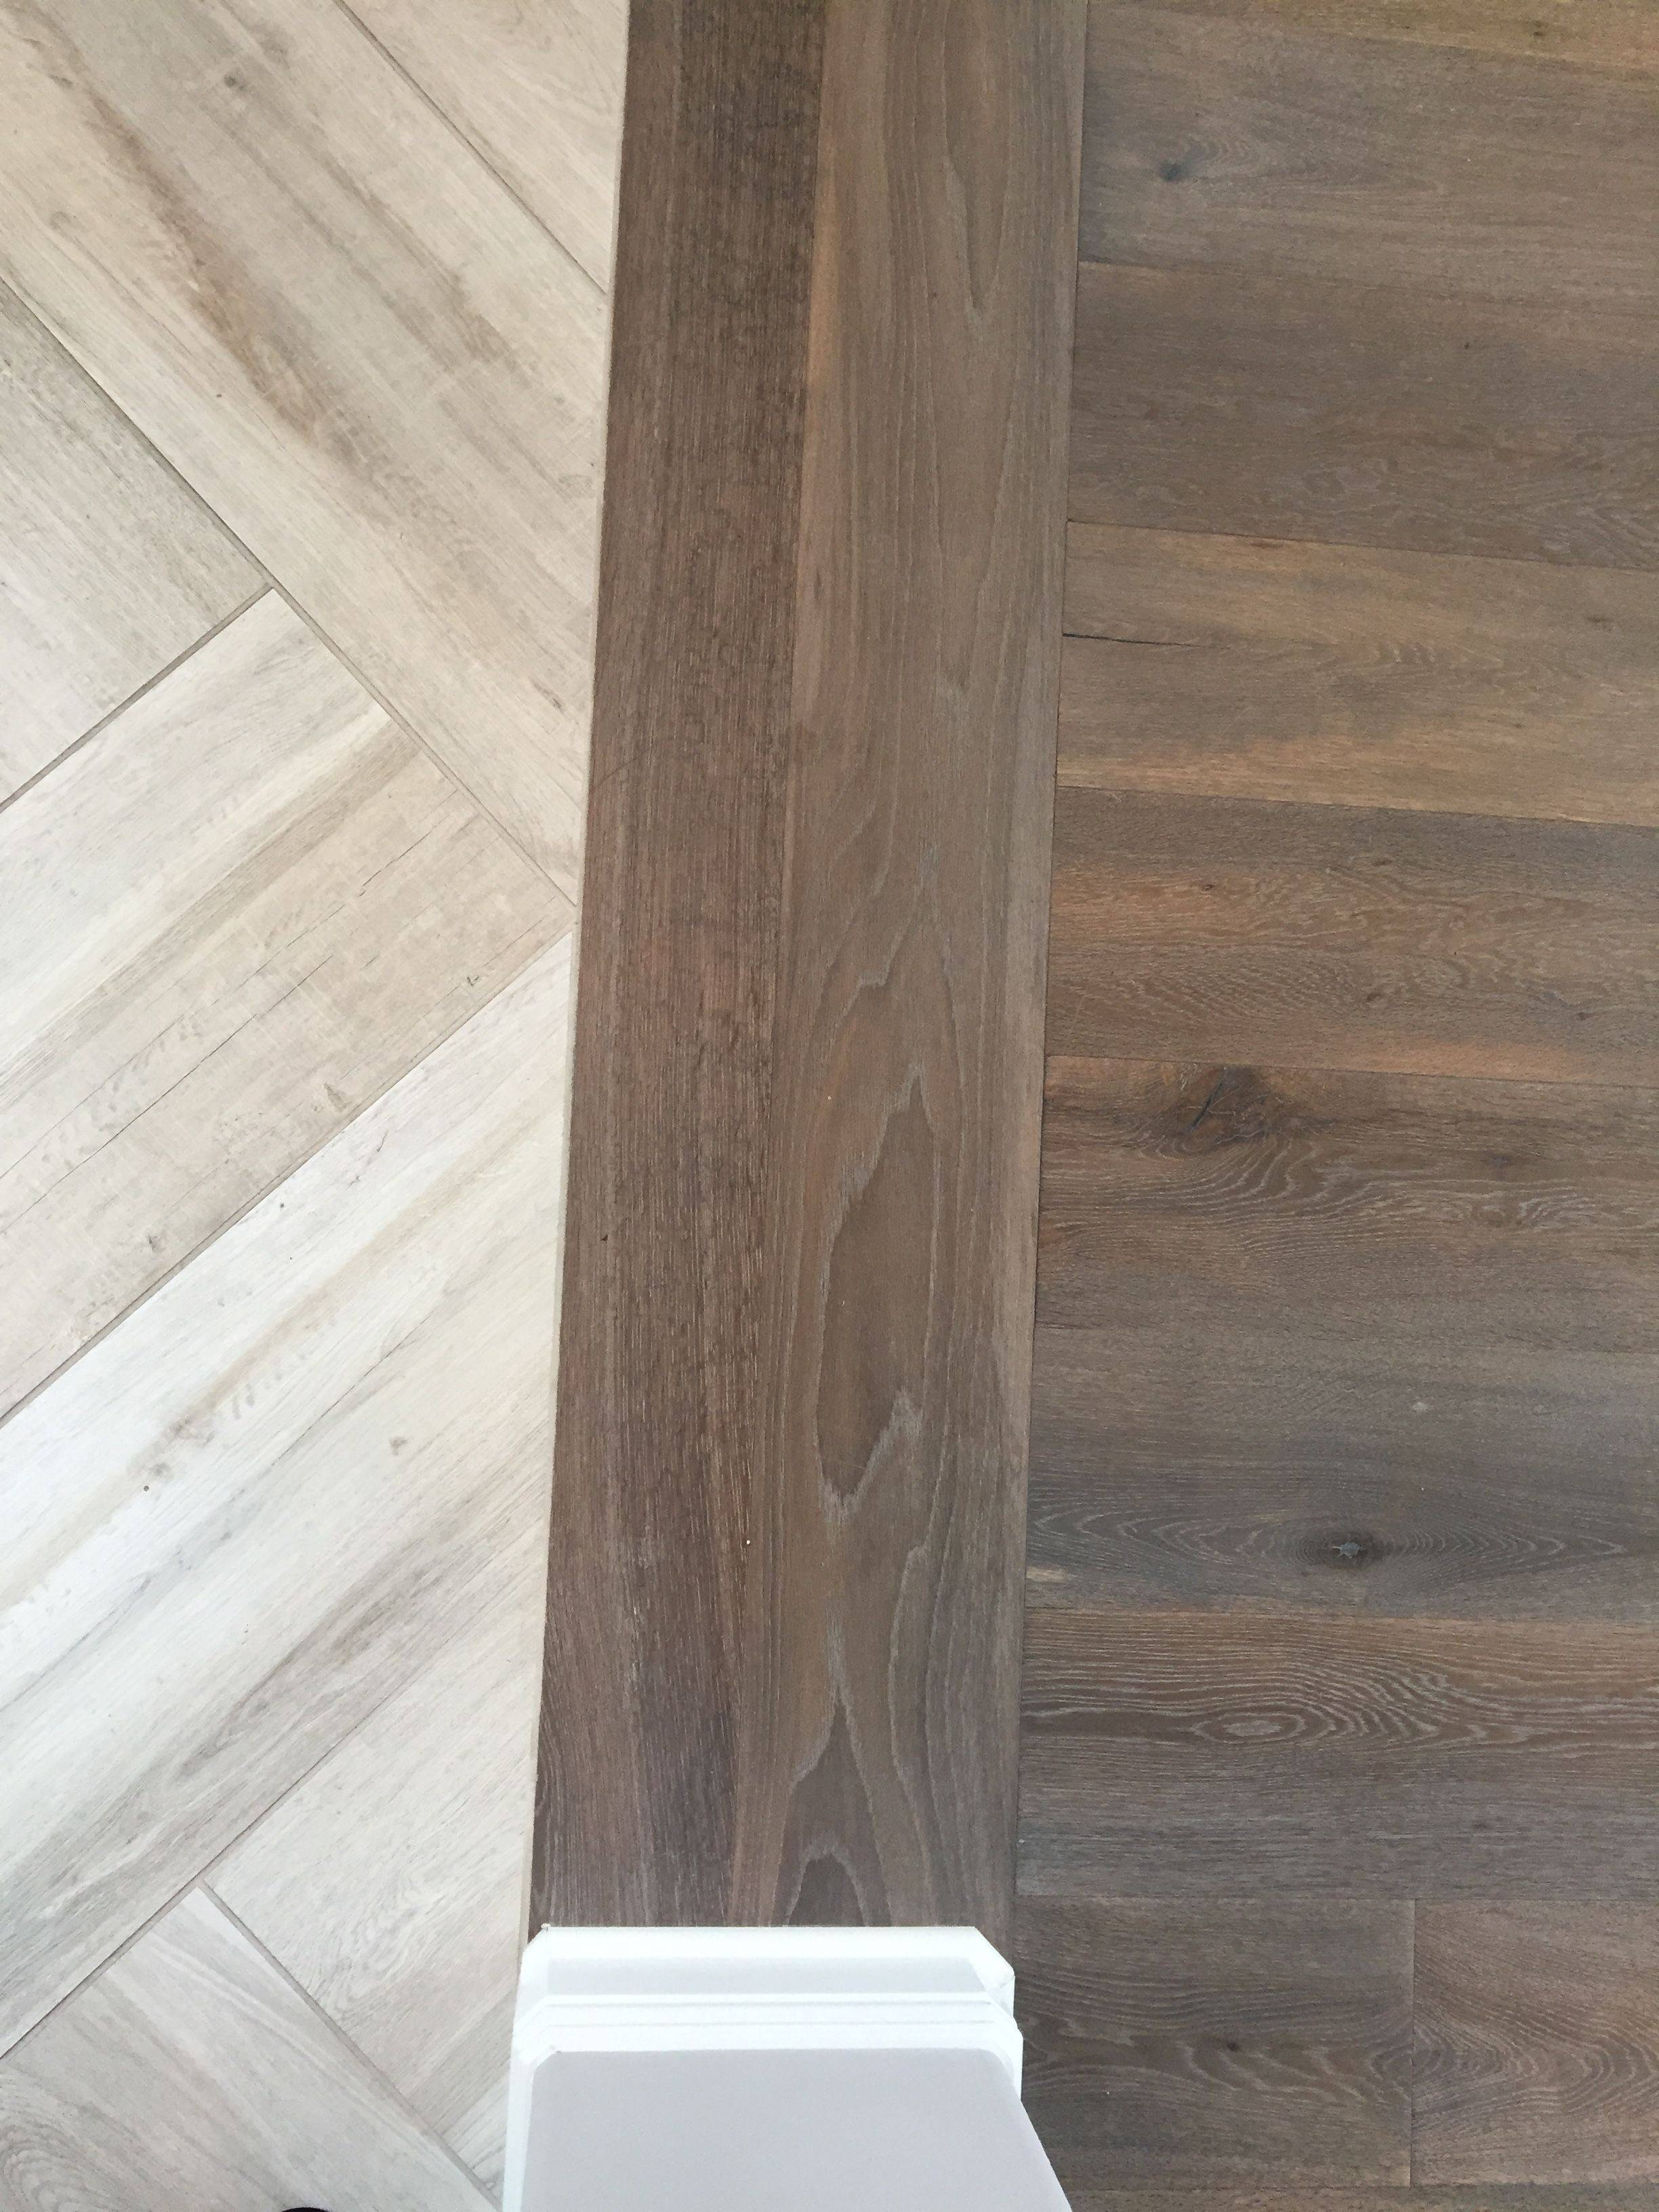 how to transition hardwood floor to tile of tile to carpet transition strip awesome od floor tile transition for tile to carpet transition strip inspirational floor transition laminate to he